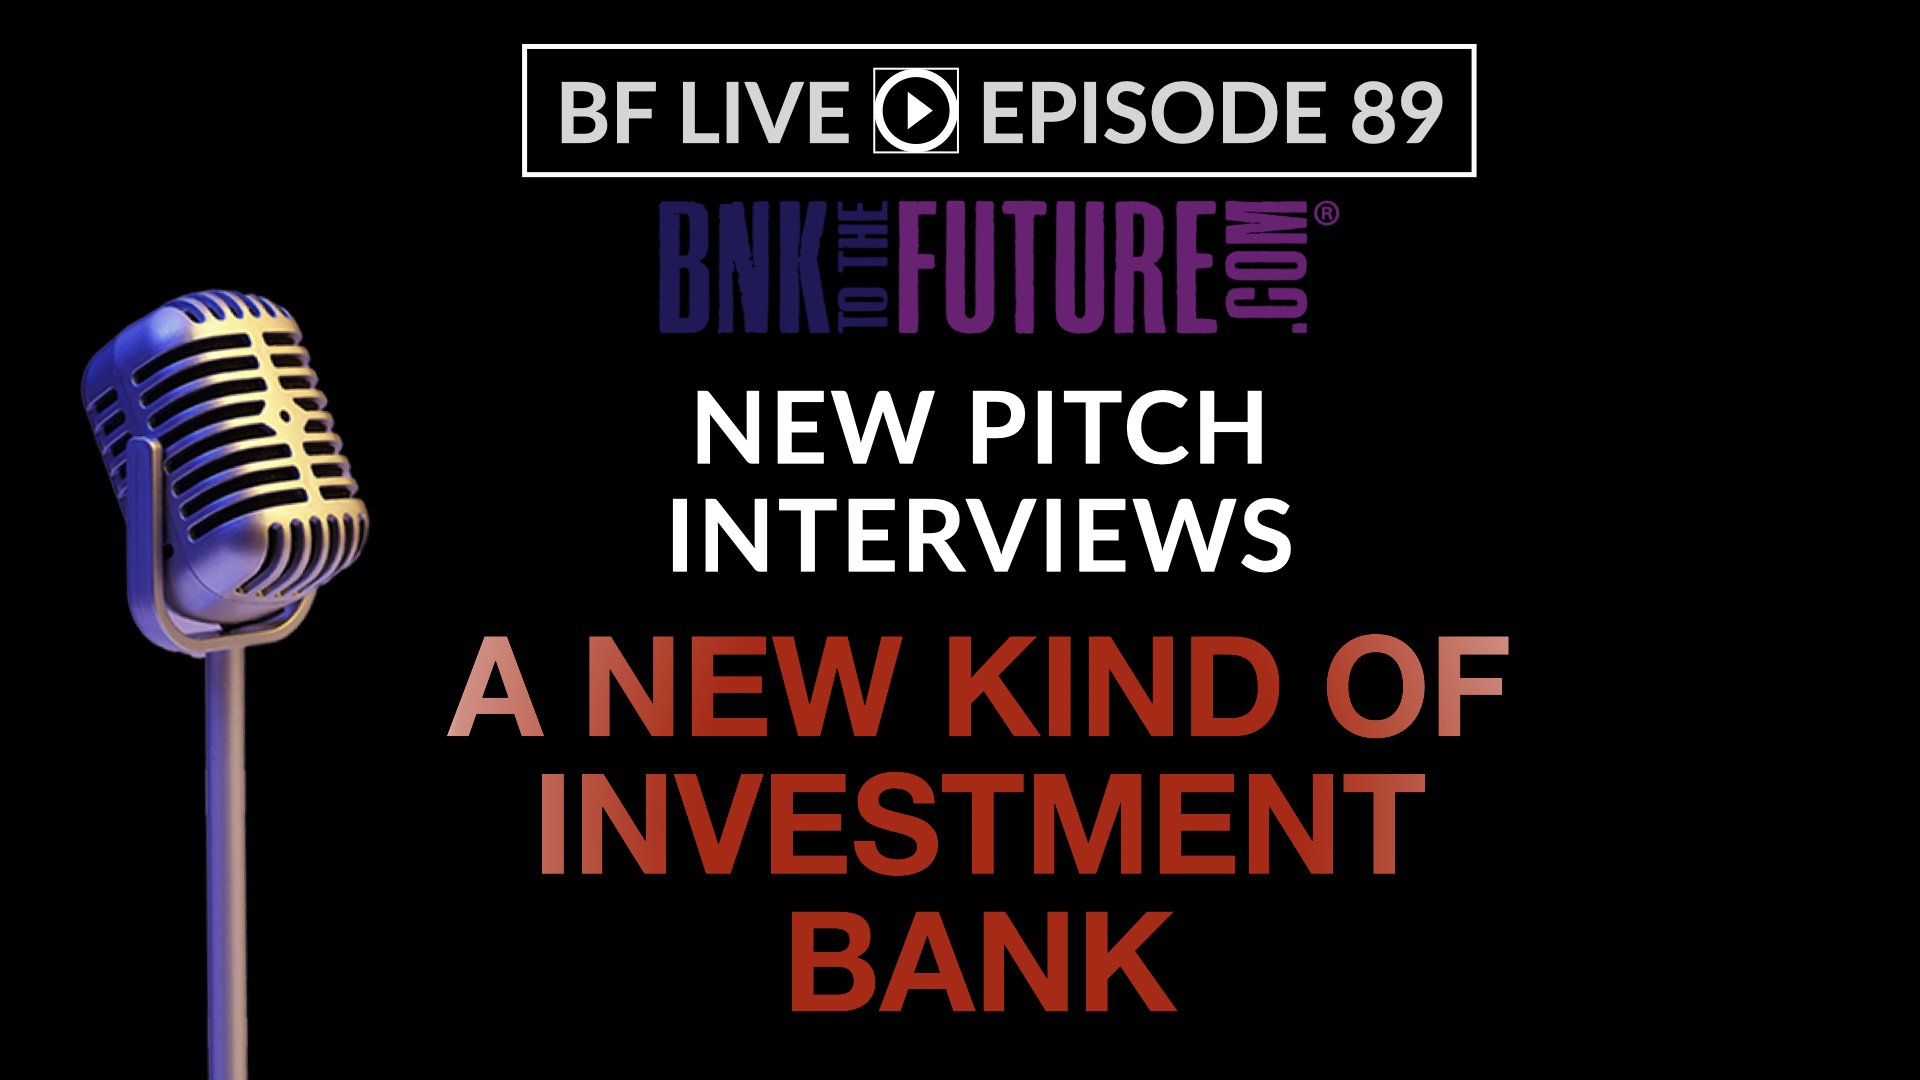 2 Exciting Announcements And A New Kind Of Investment Bank   BF LIVE #89